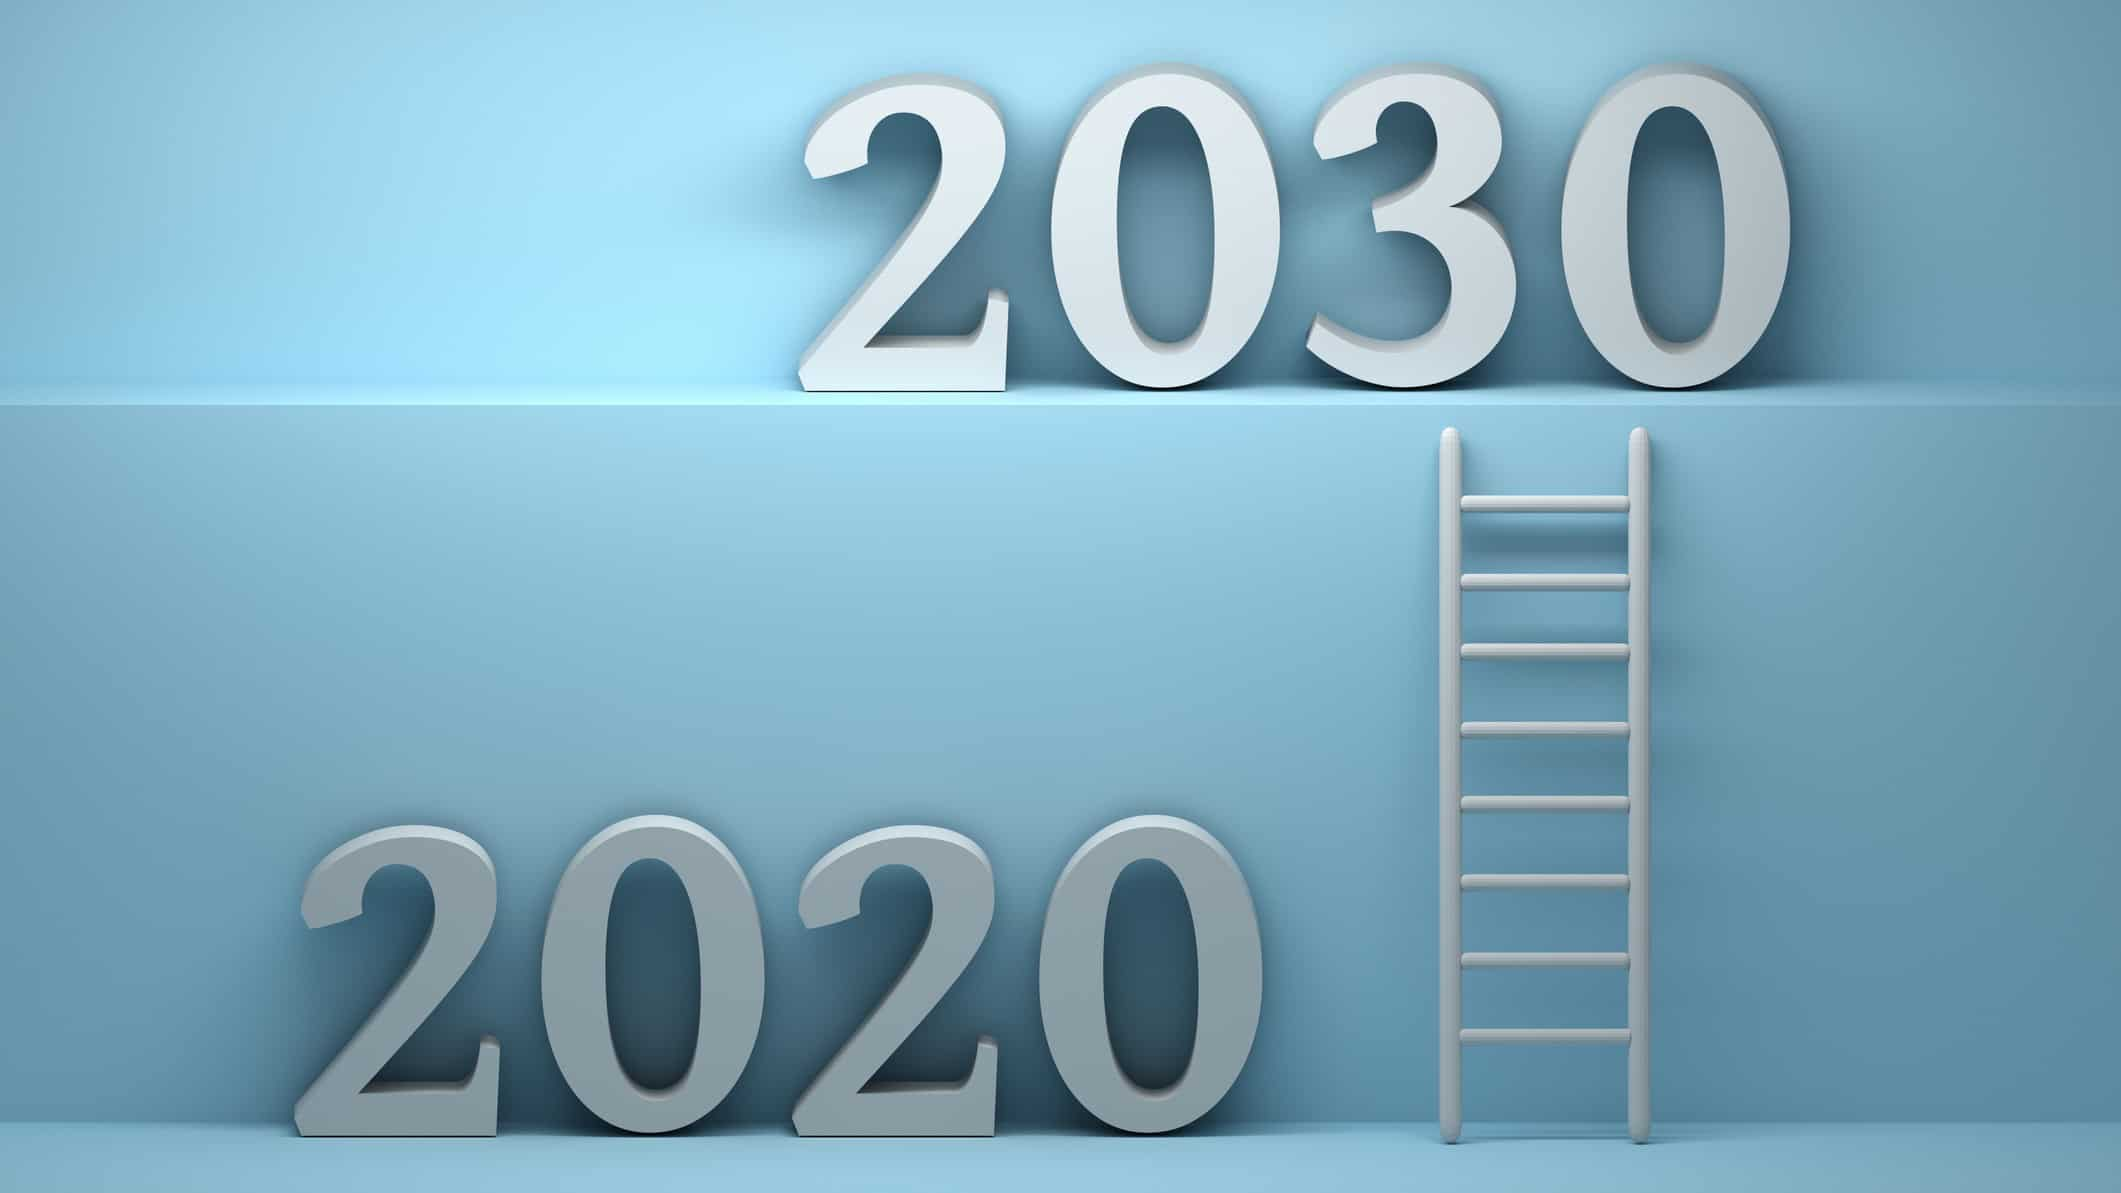 ladder going between 2020 and 2030